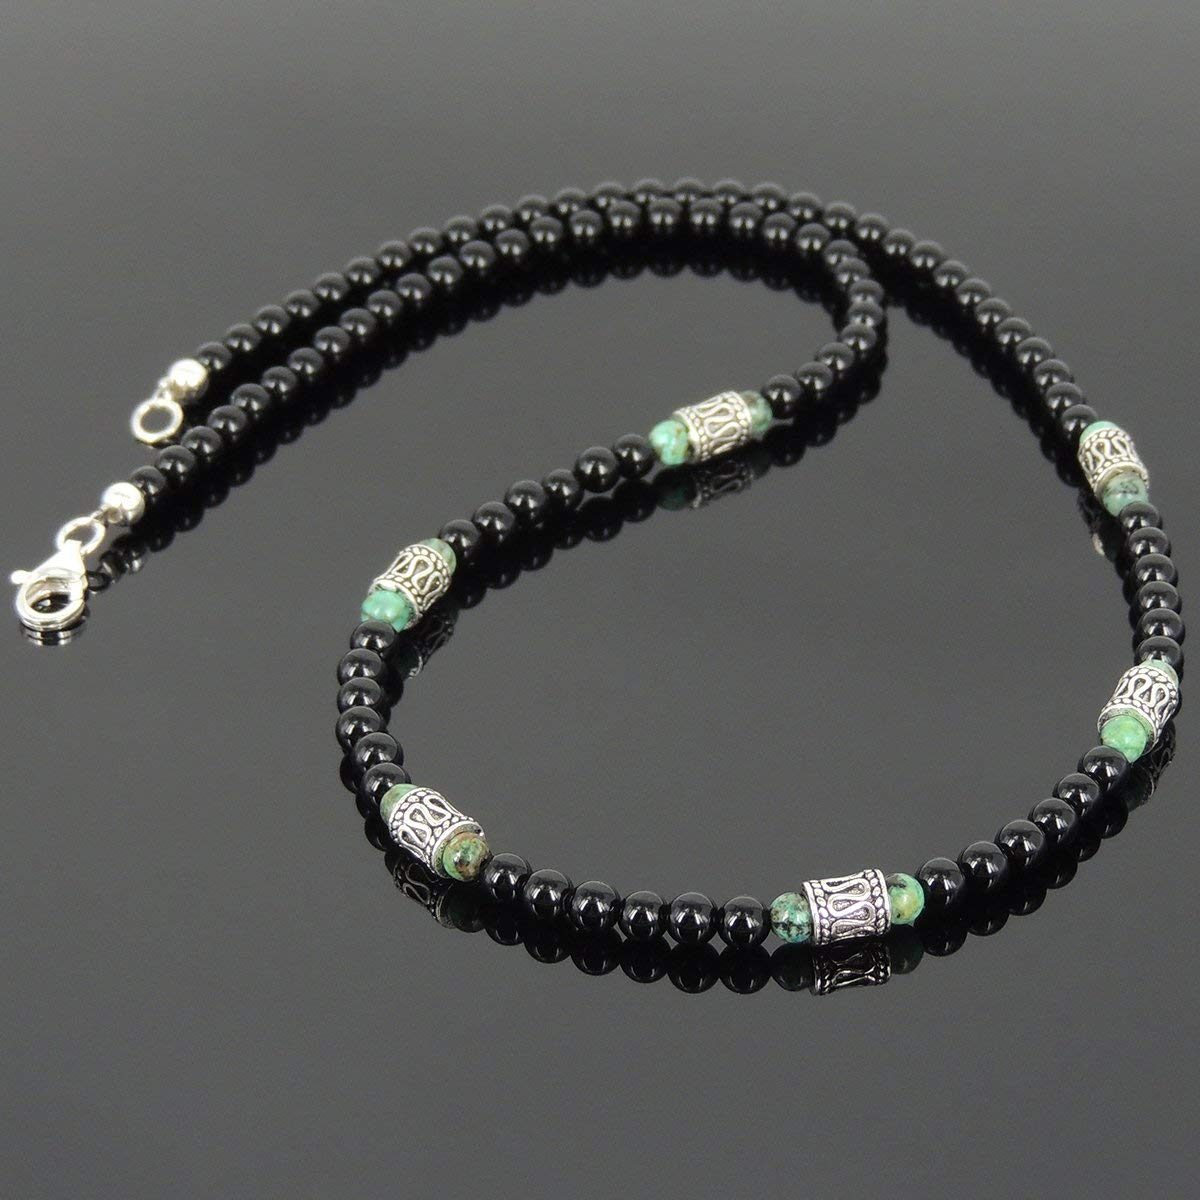 Men and Women Necklace Handmade with 4mm Bright Black Onyx African Green Turquoise Healing Gemstone and Genuine 925 Sterling Silver Beads & Clasp